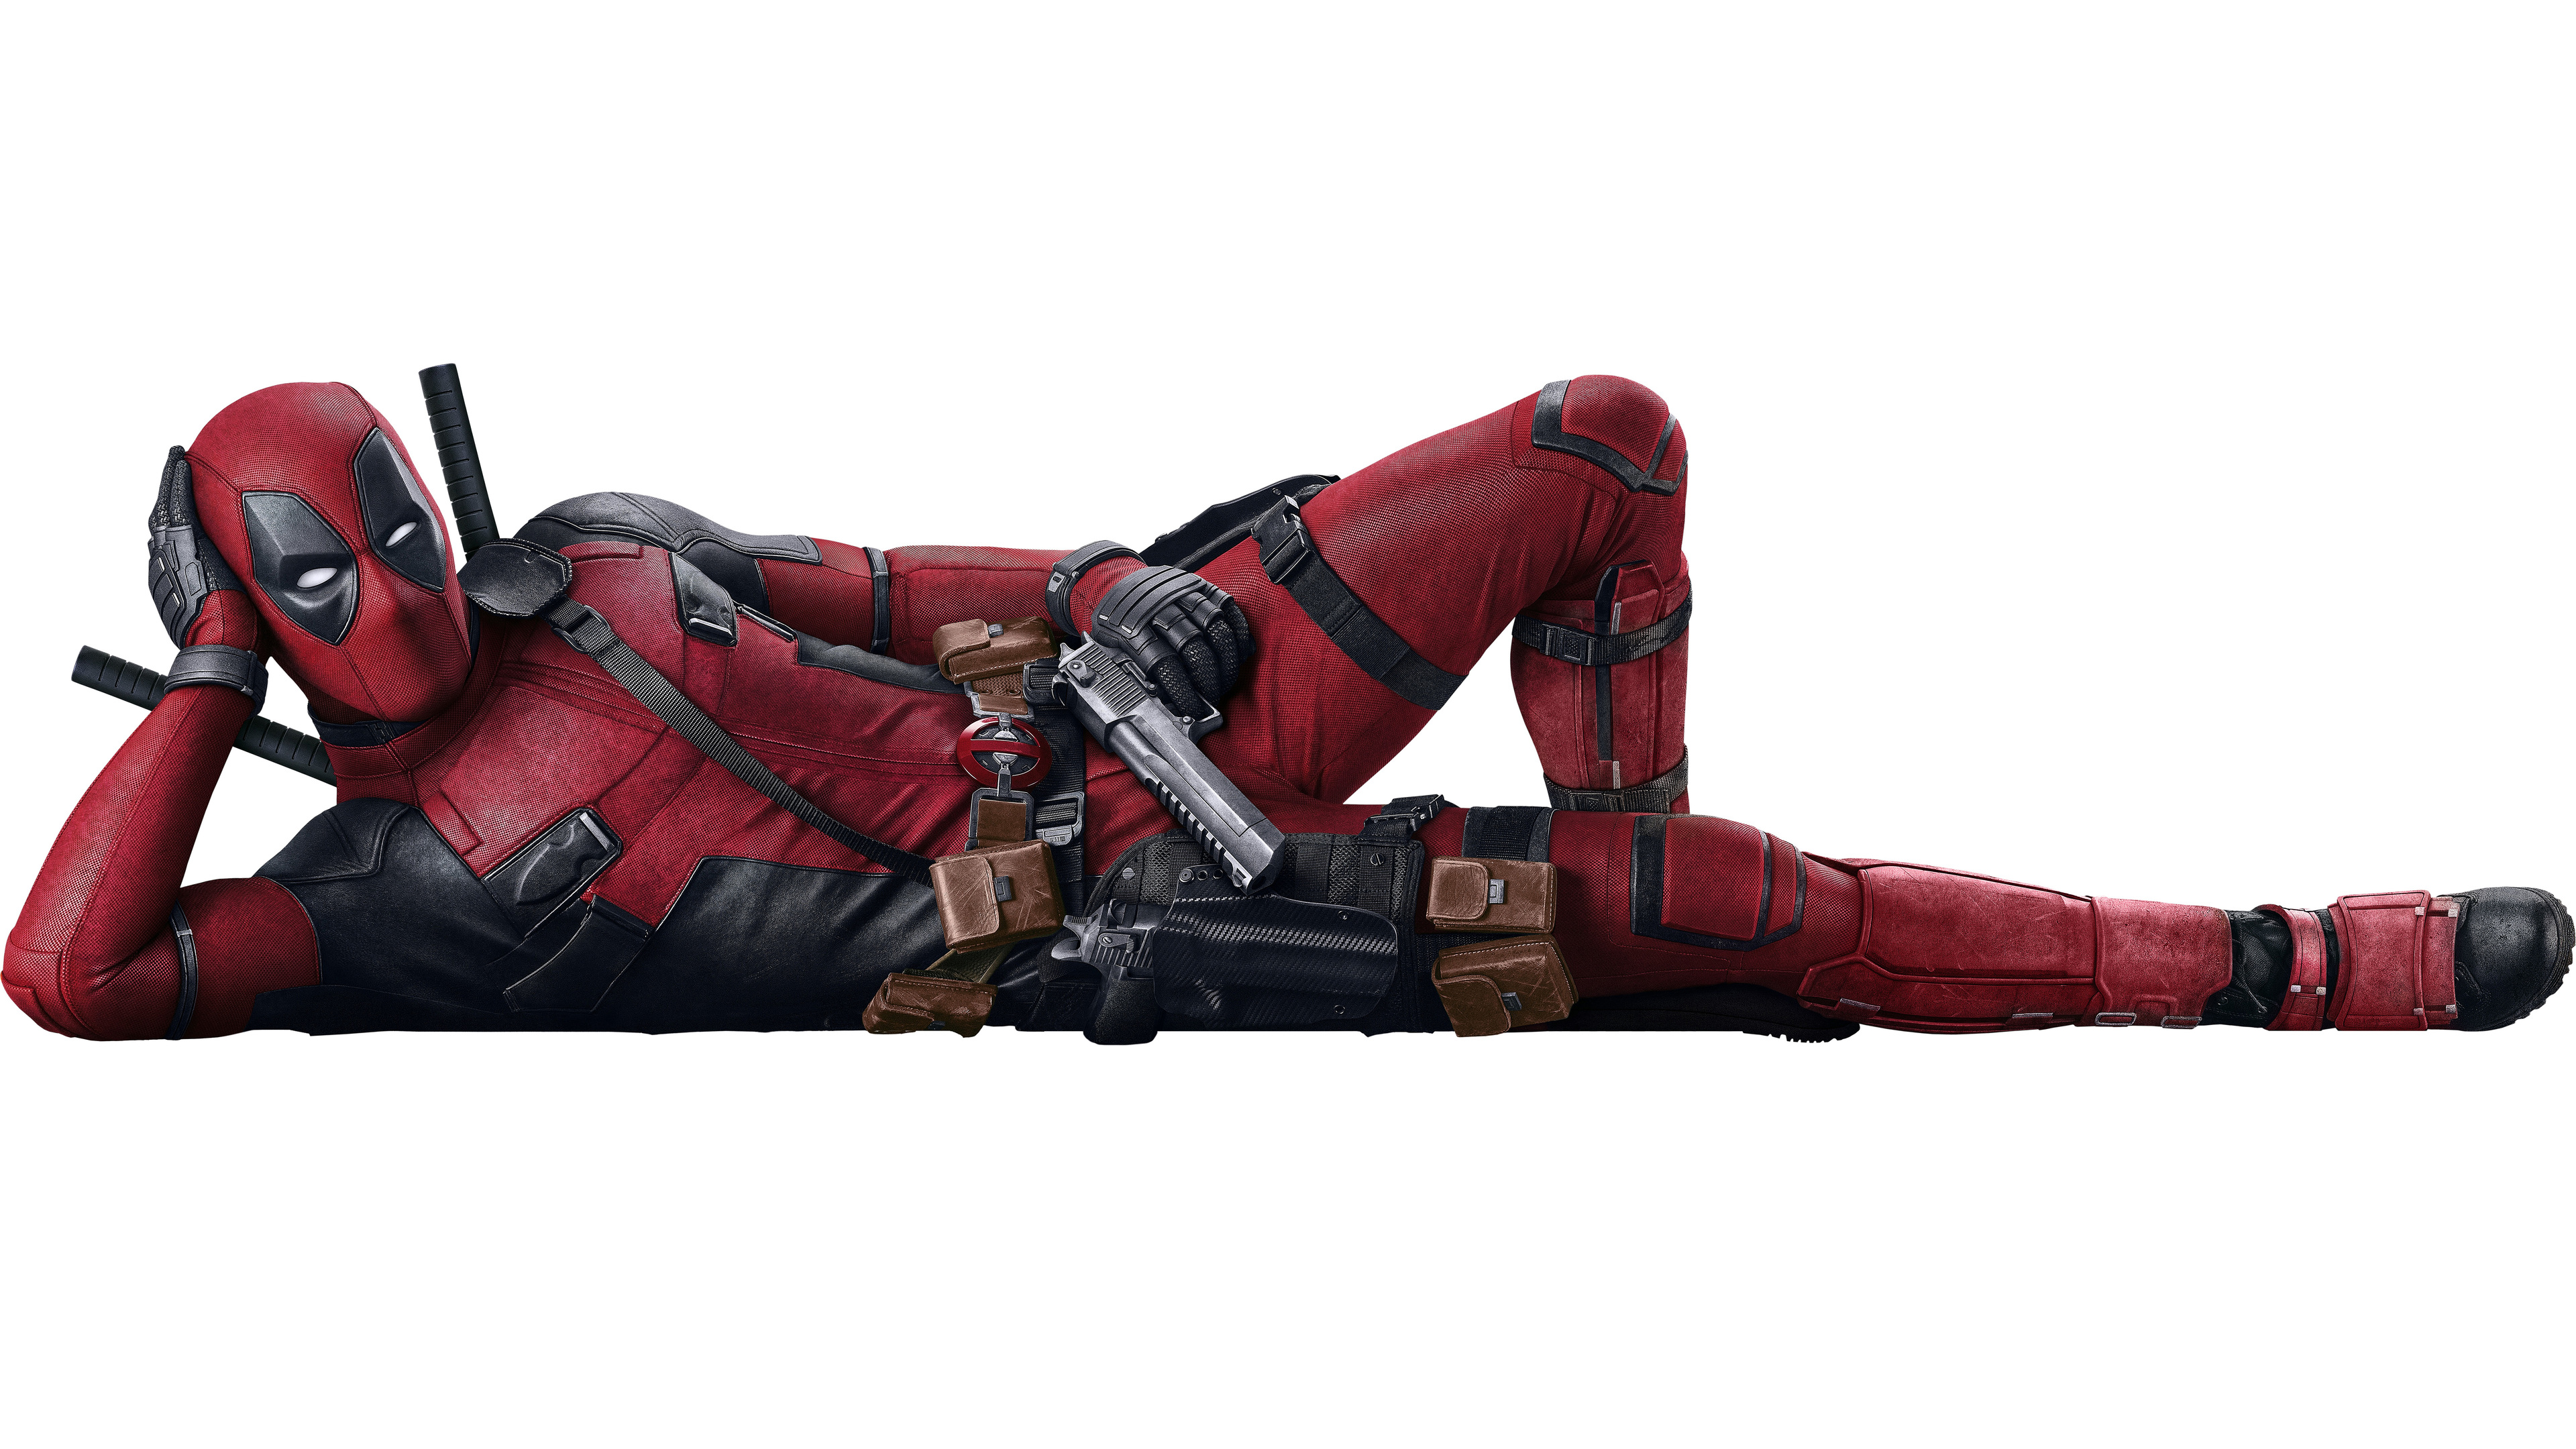 Wallpaper 4k Deadpool 2 Movie 2018 8k 2018 Movies Wallpapers 4k